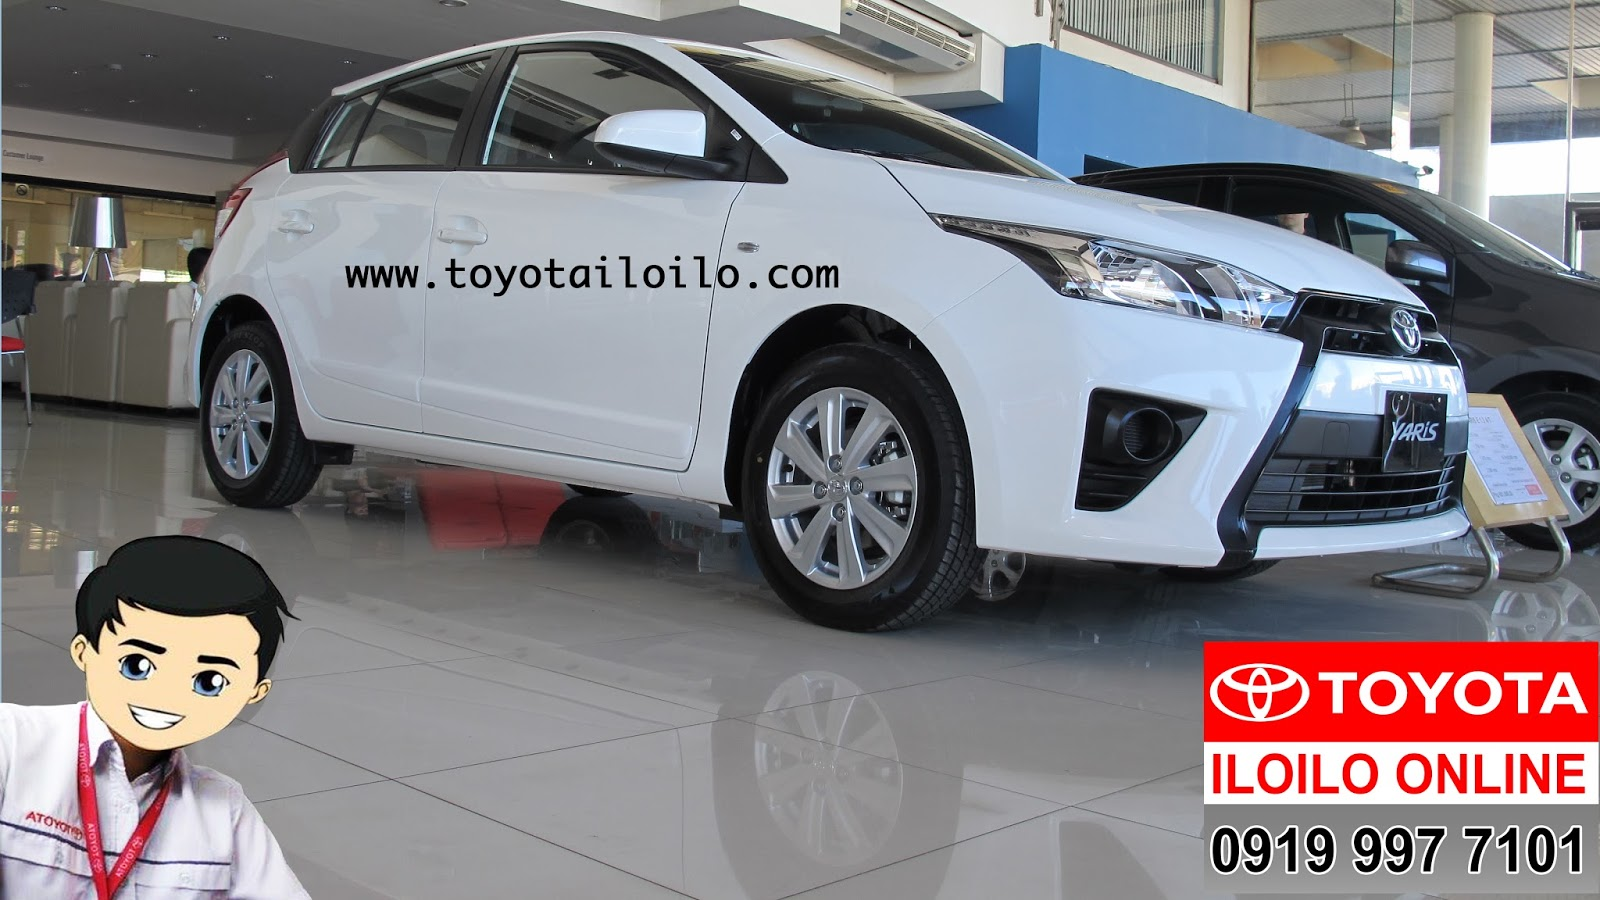 The toyota yaris has become so accustomed to our iloilo roads that many regard it as a very agile very reliable small wonder of a sub compact